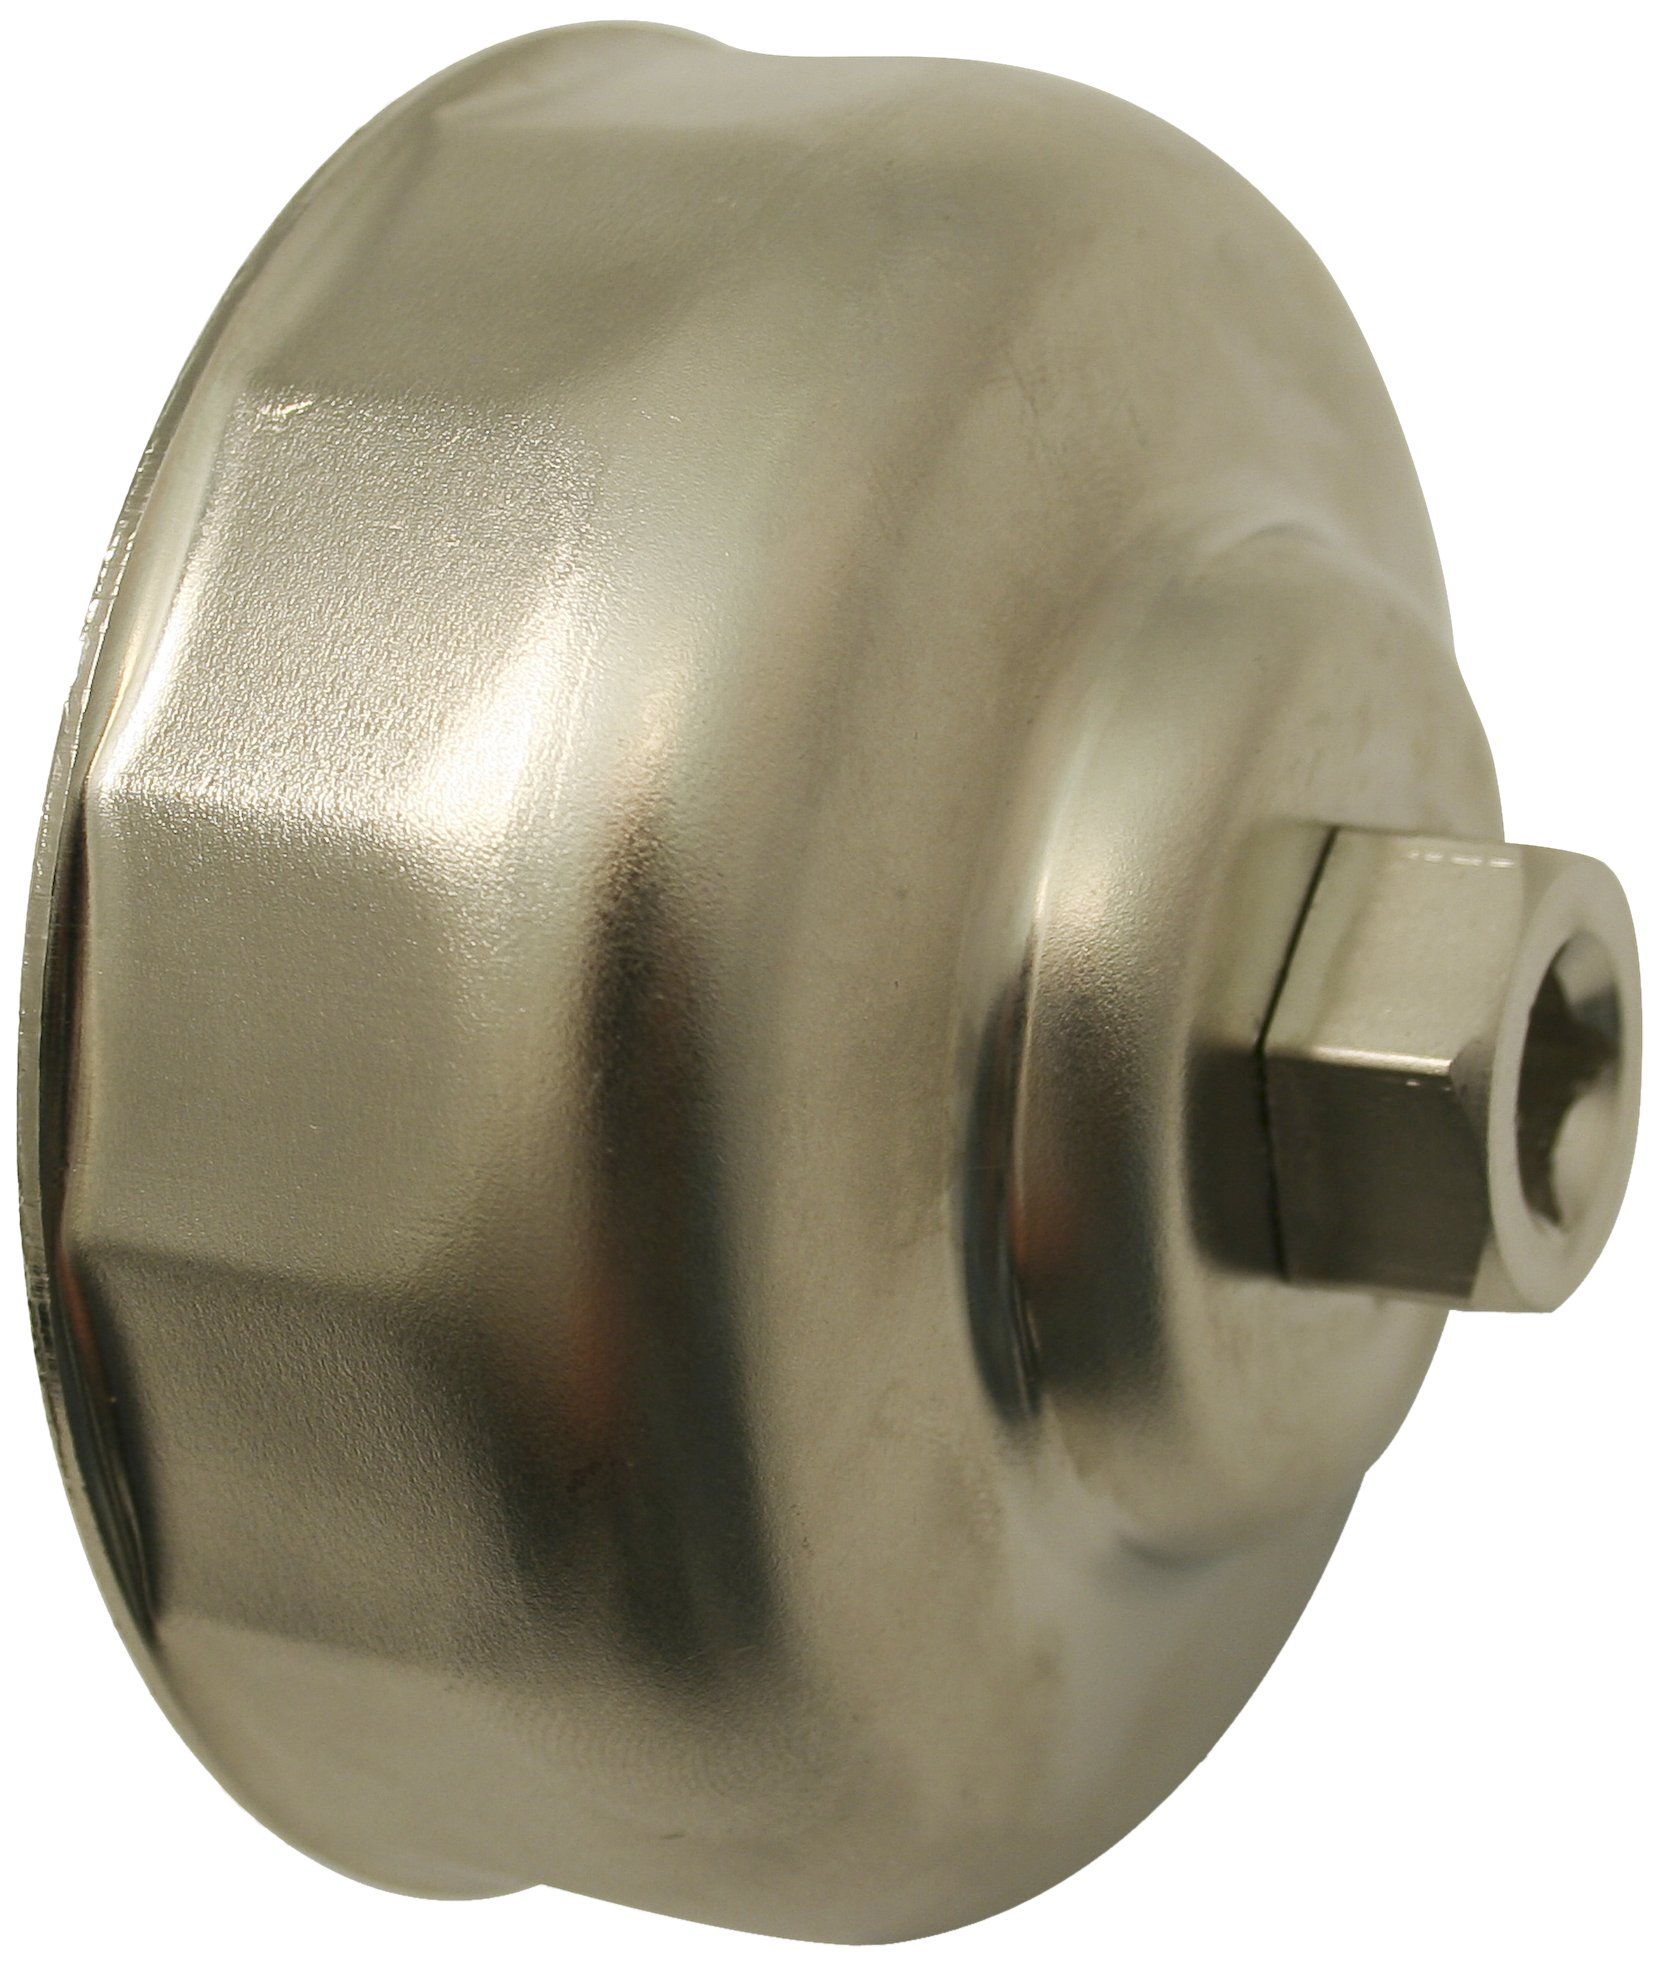 CTA Tools 2489 86-Millimeter Heavy-Duty Cap-Type Oil Filter Wrench